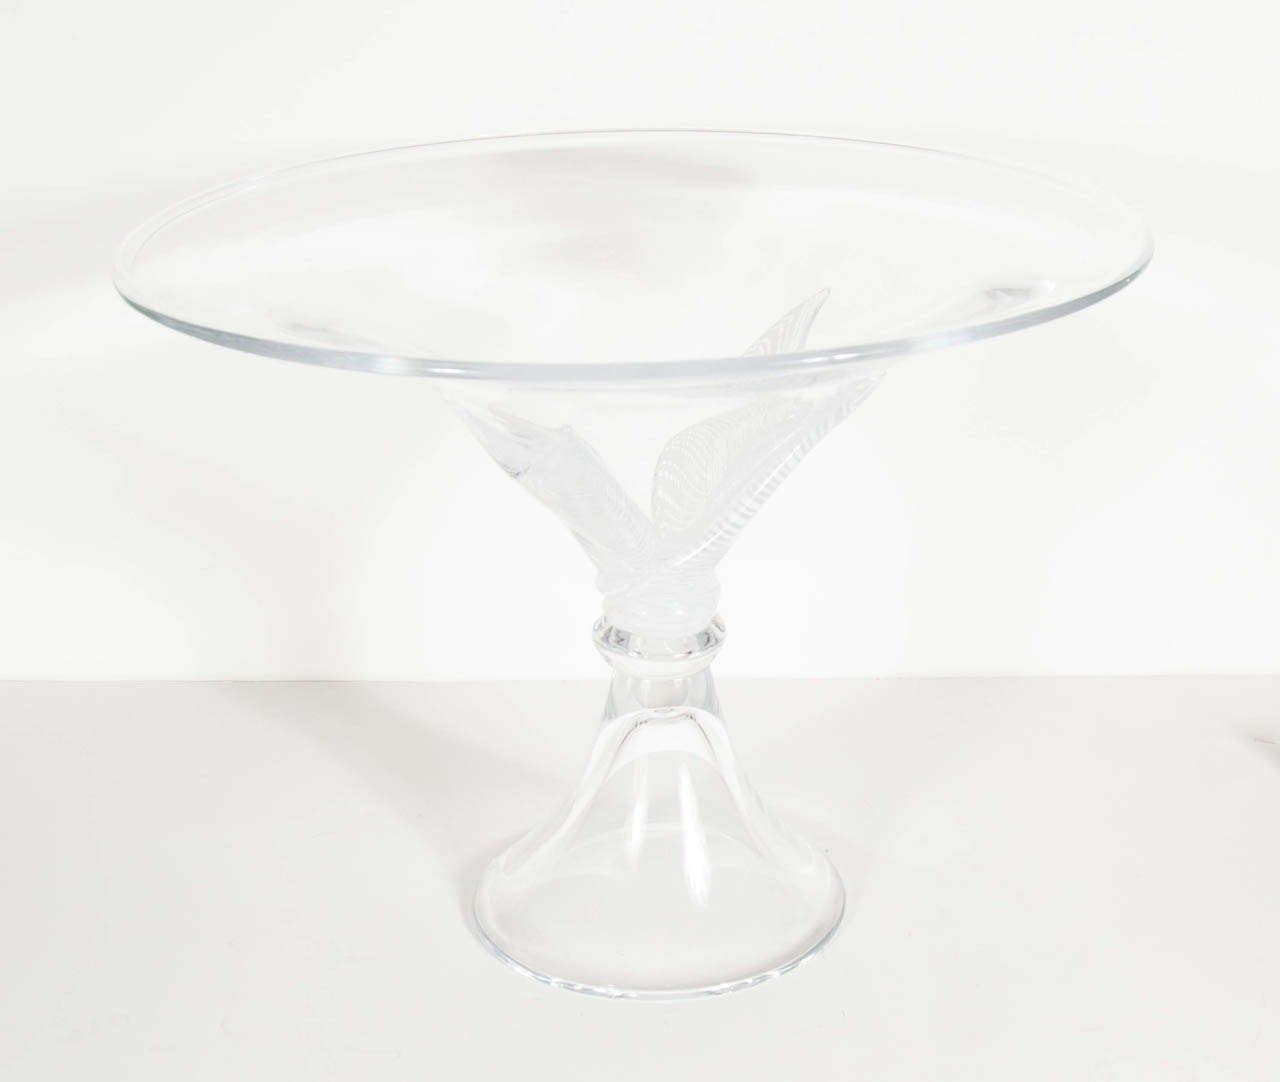 This gorgeous large scale bowl by Licio Zanetti with a white linear feathered blown glass feature at the mid-point. The symmetry of the bowl and base is visually appealing and is signed. Licio Zanetti is world-renowned for his Murano glass